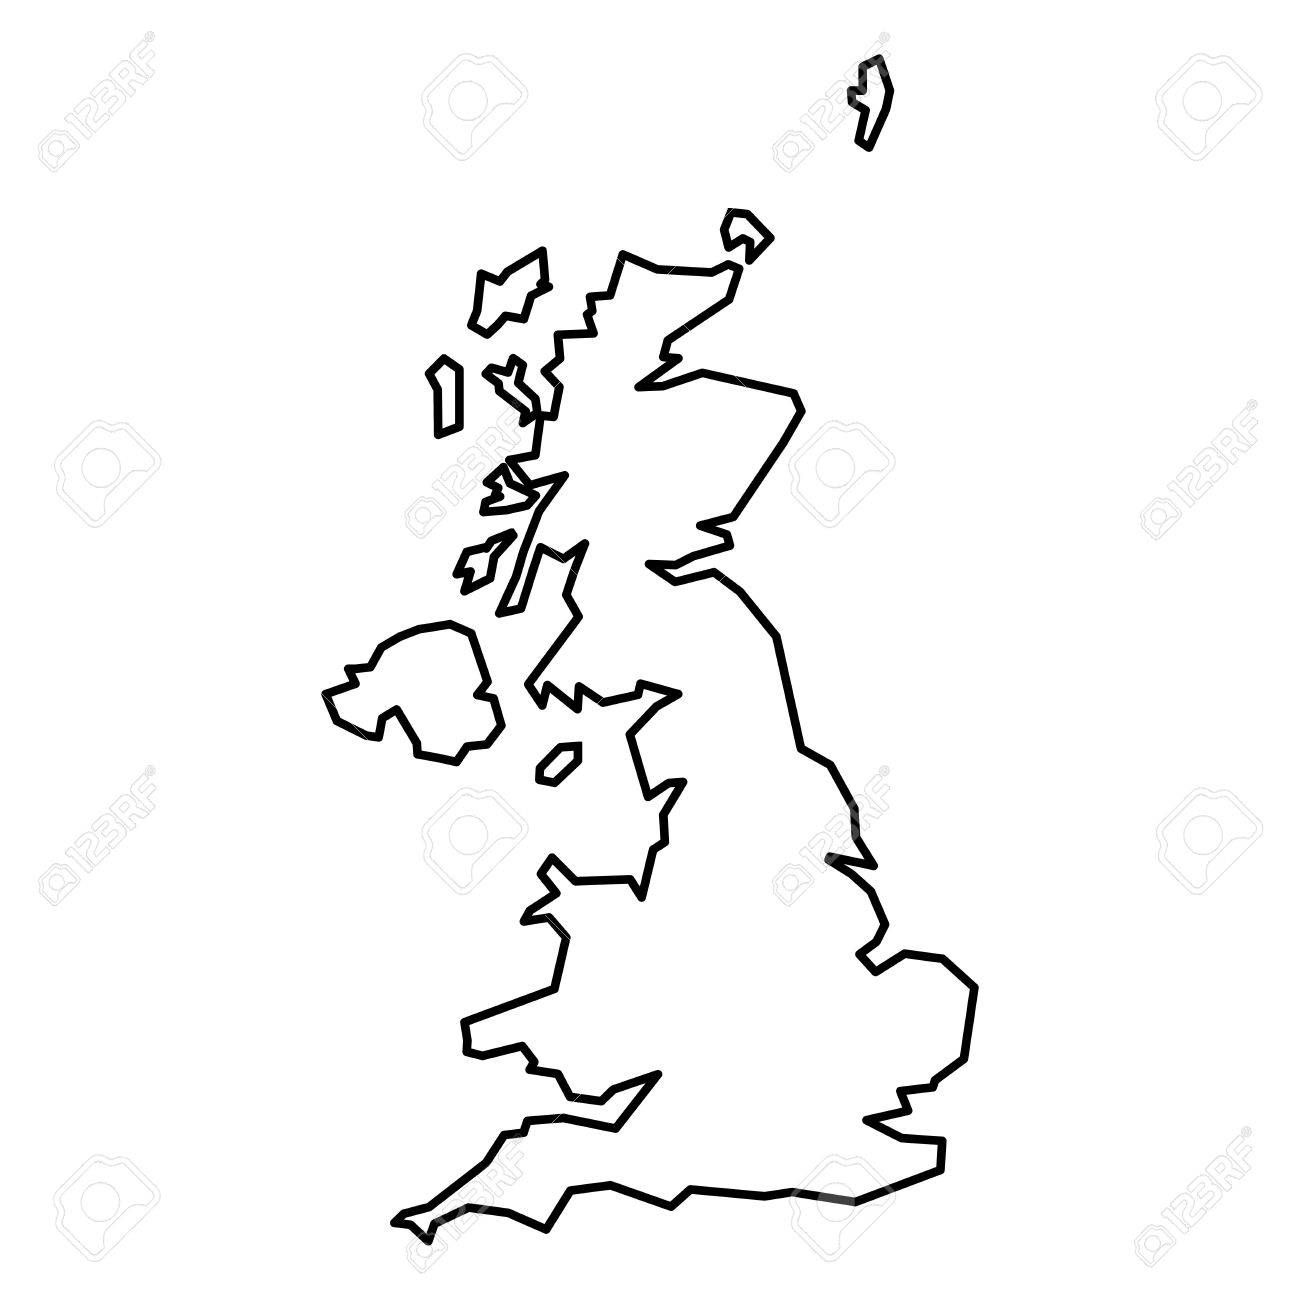 Britain Blank Map Simple Contour Map Of United Kingdom Of Great Britain And Northern